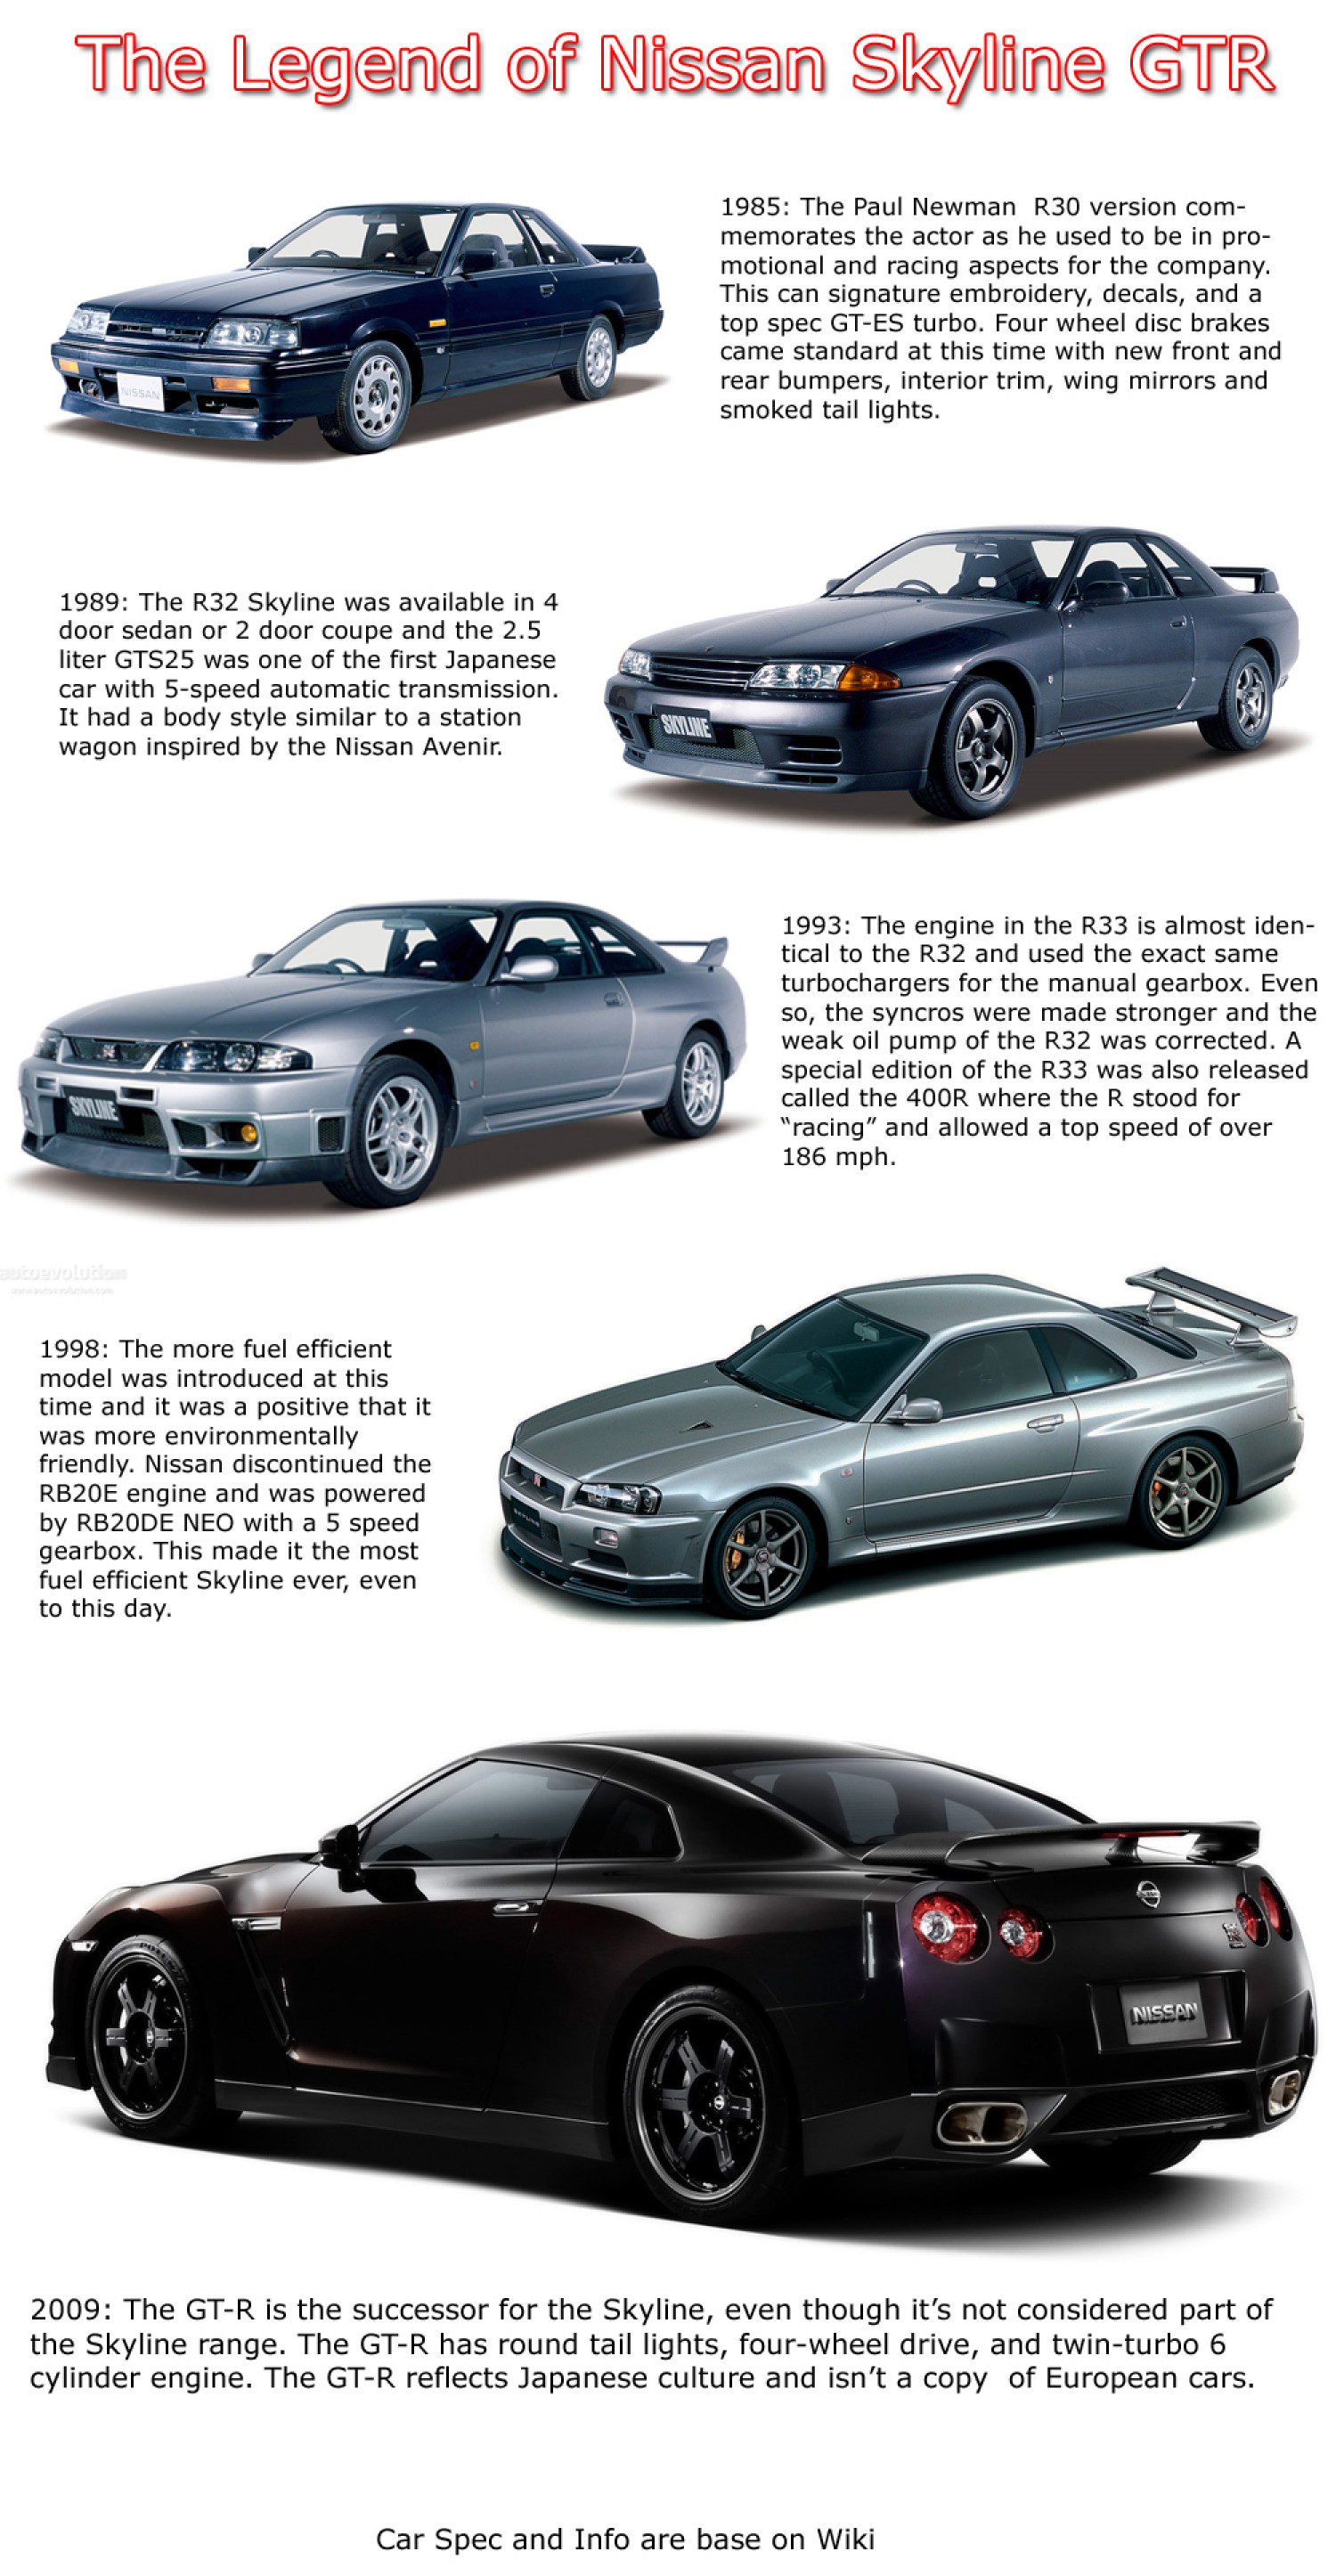 The JDM Legend: Nissan Skyline GT-R Infographic